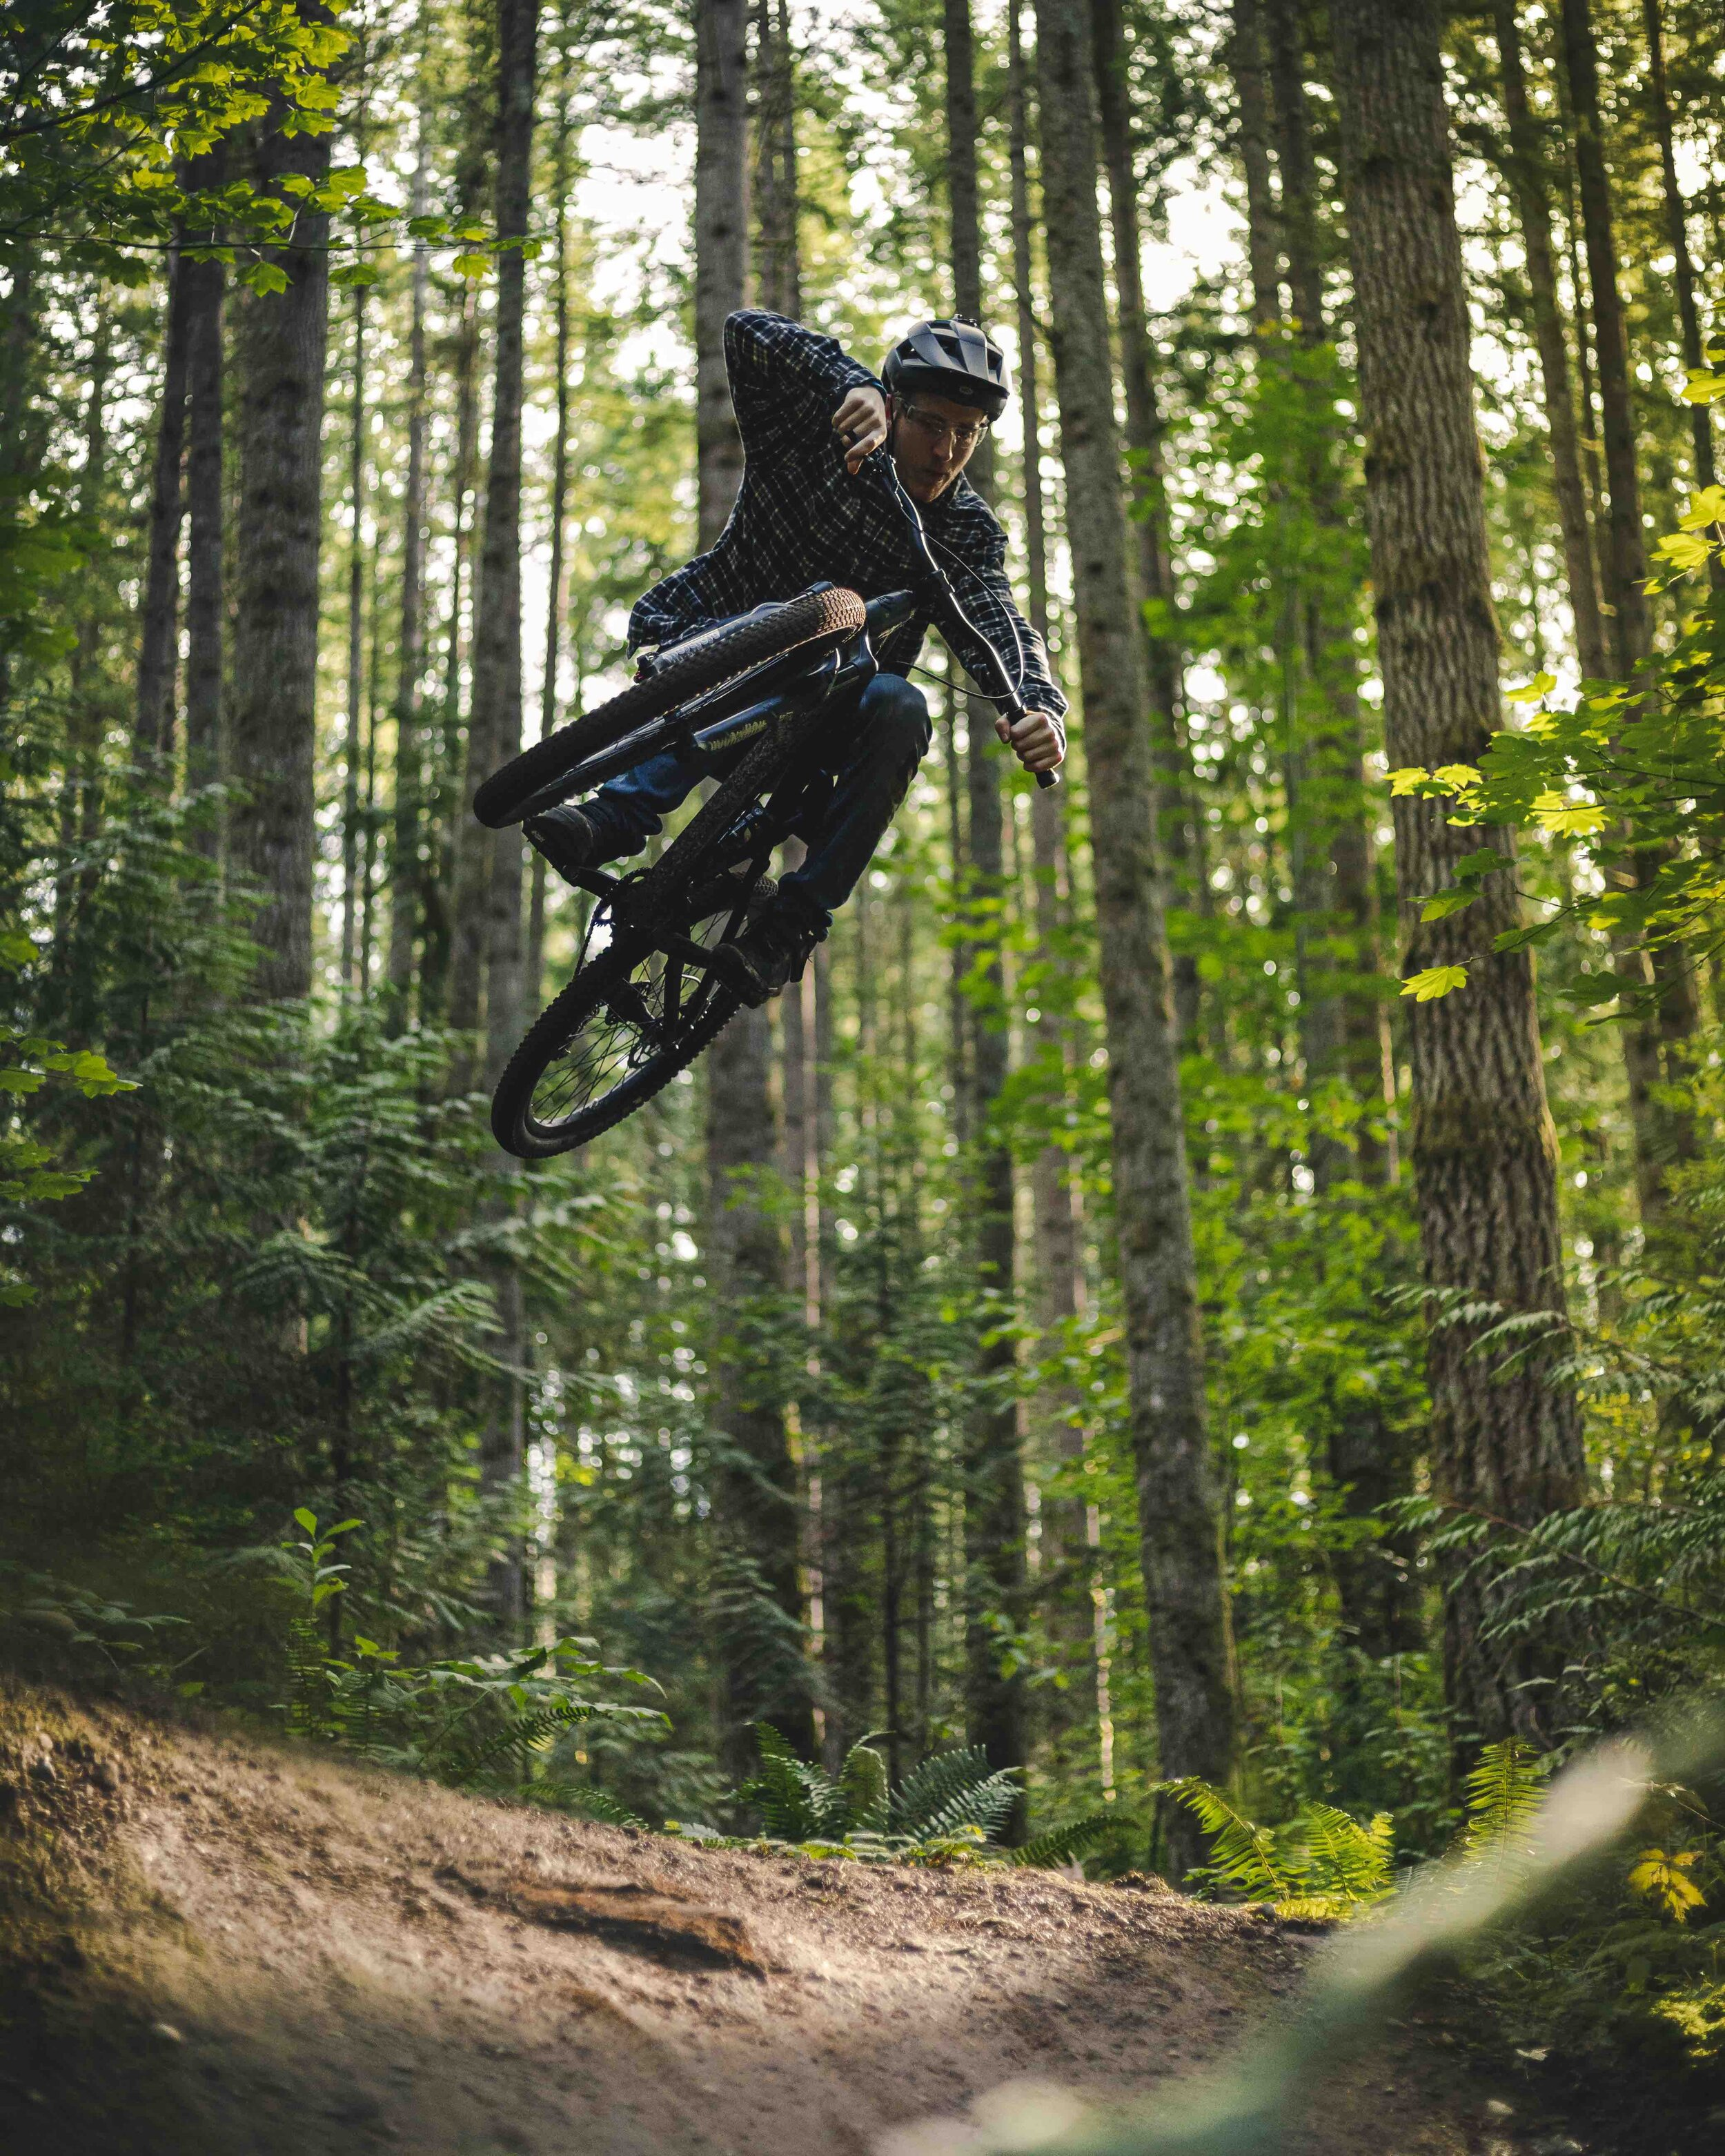 Stylish_Mountain_Bike_Jump_Trick_Catching_Air_in_Forest.jpeg